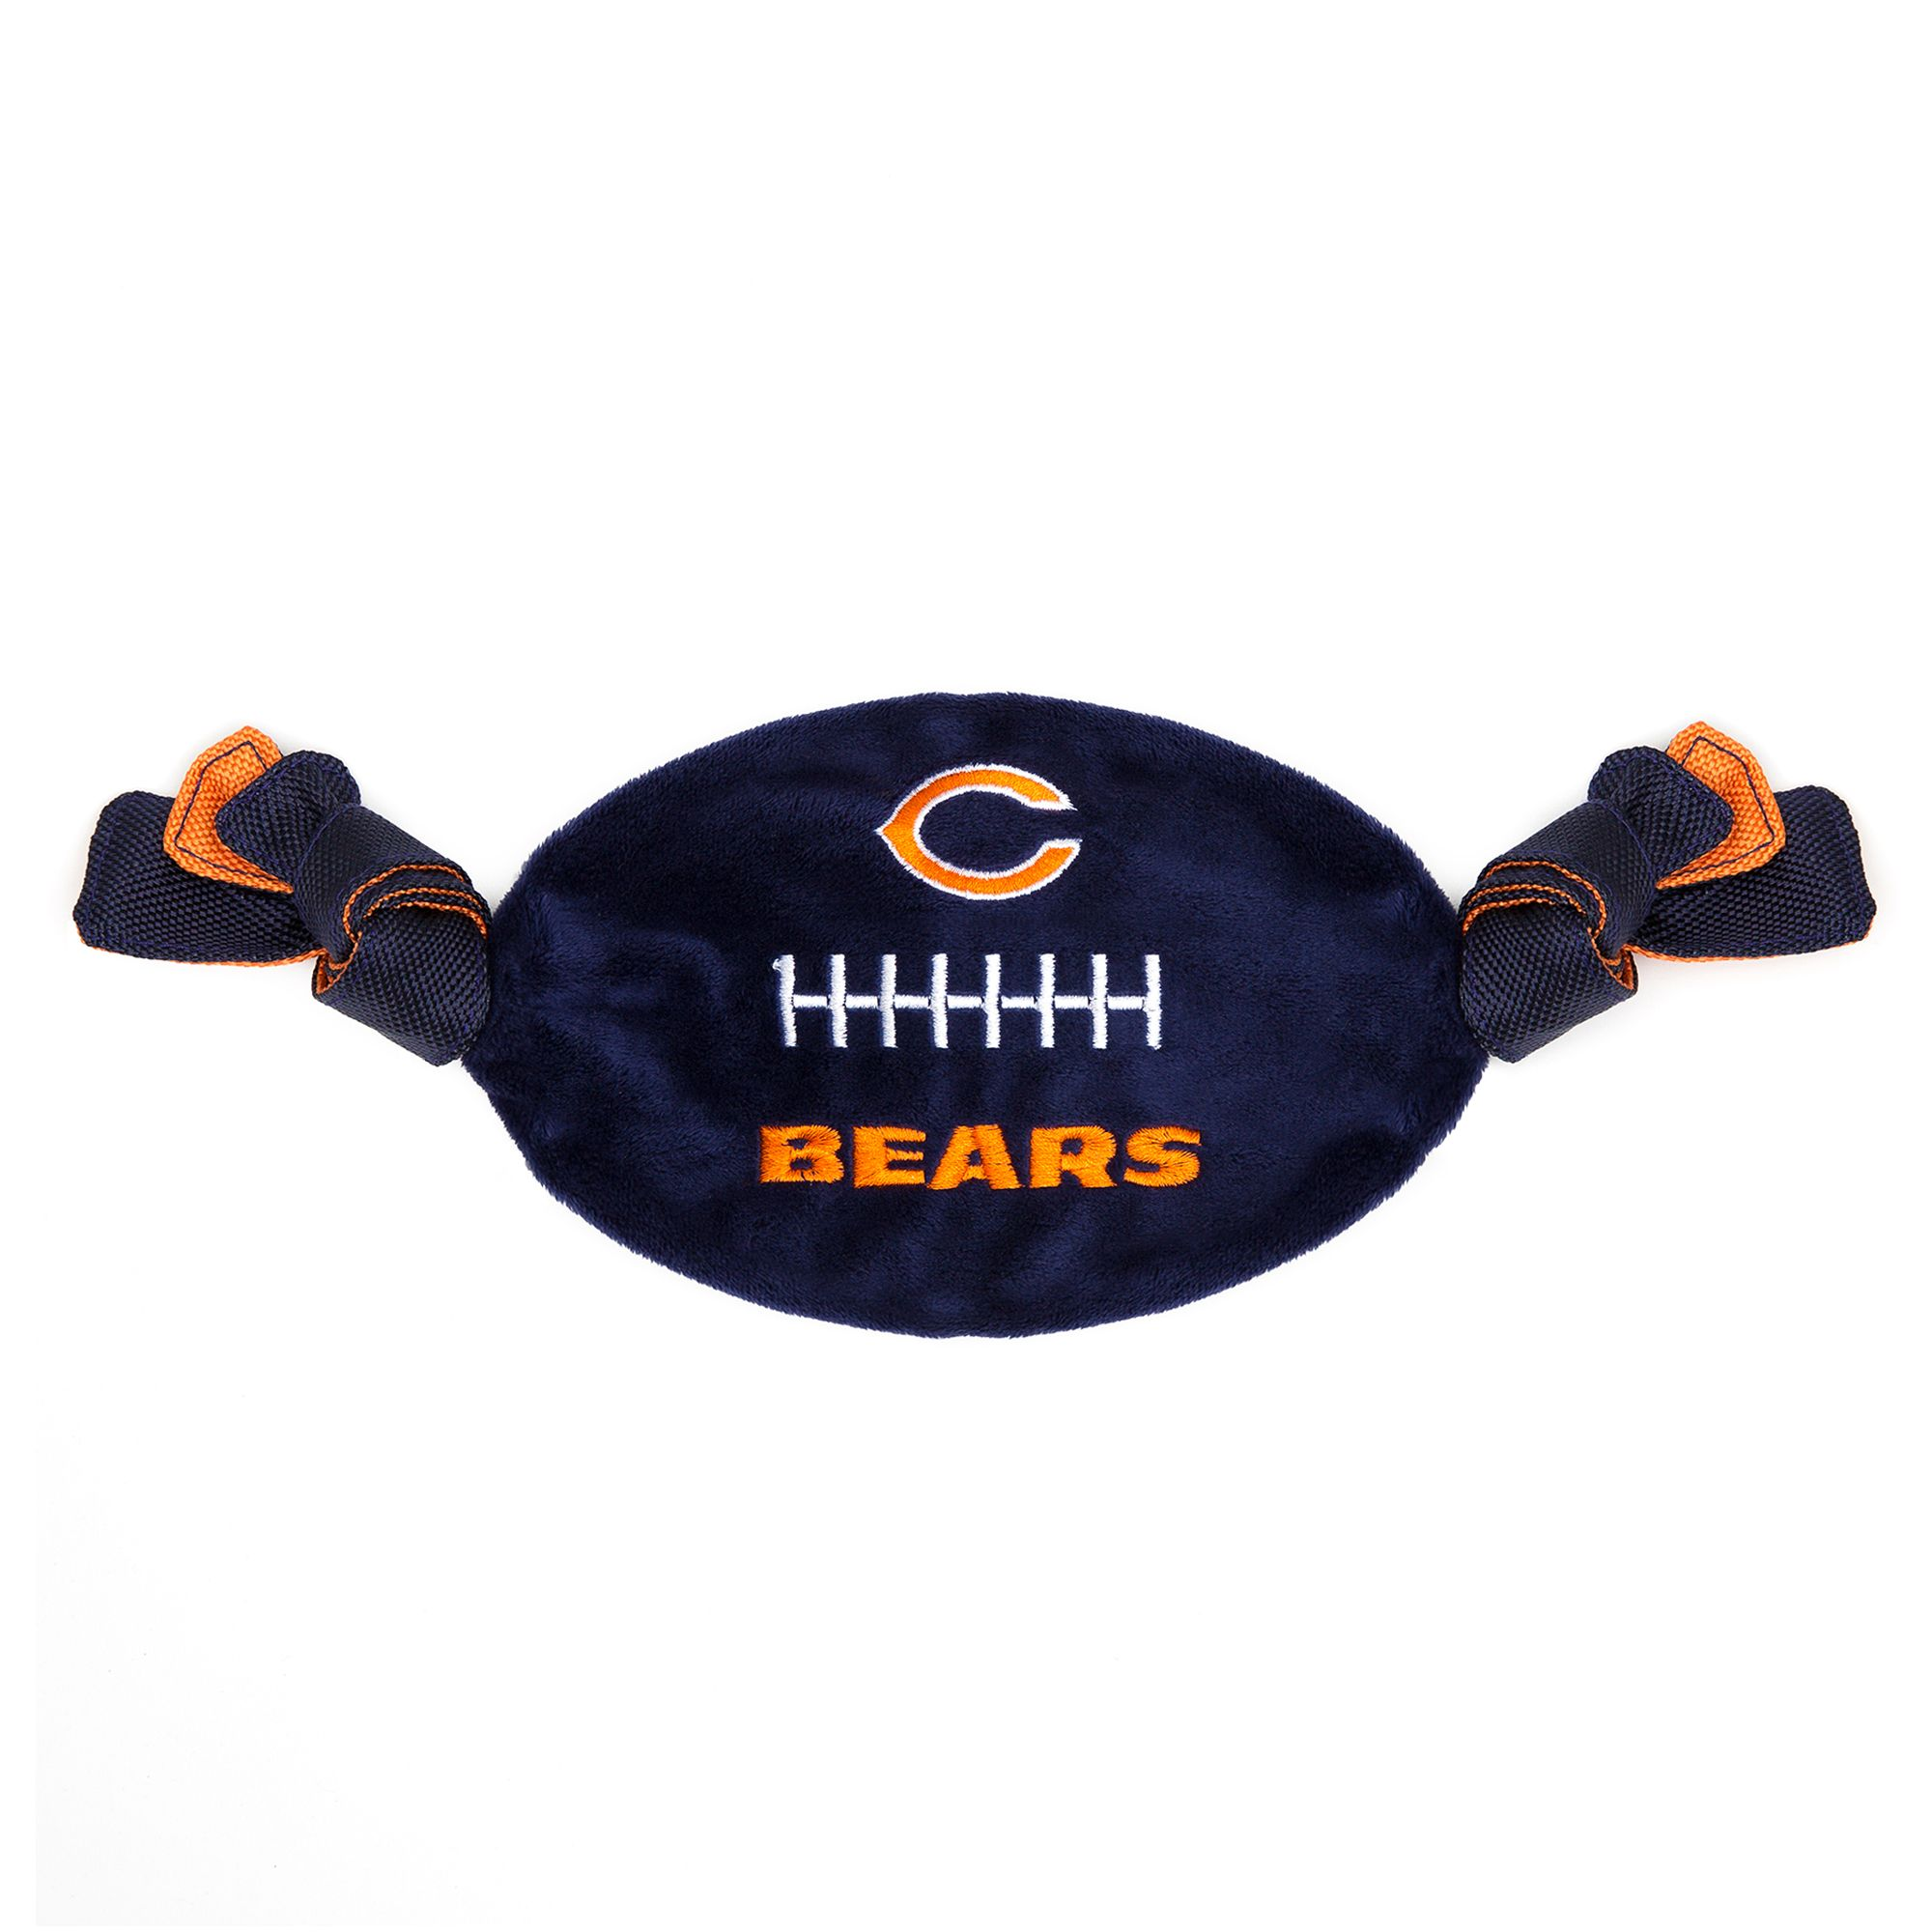 Chicago Bears NFL Flattie Crinkle Football Toy 5259663